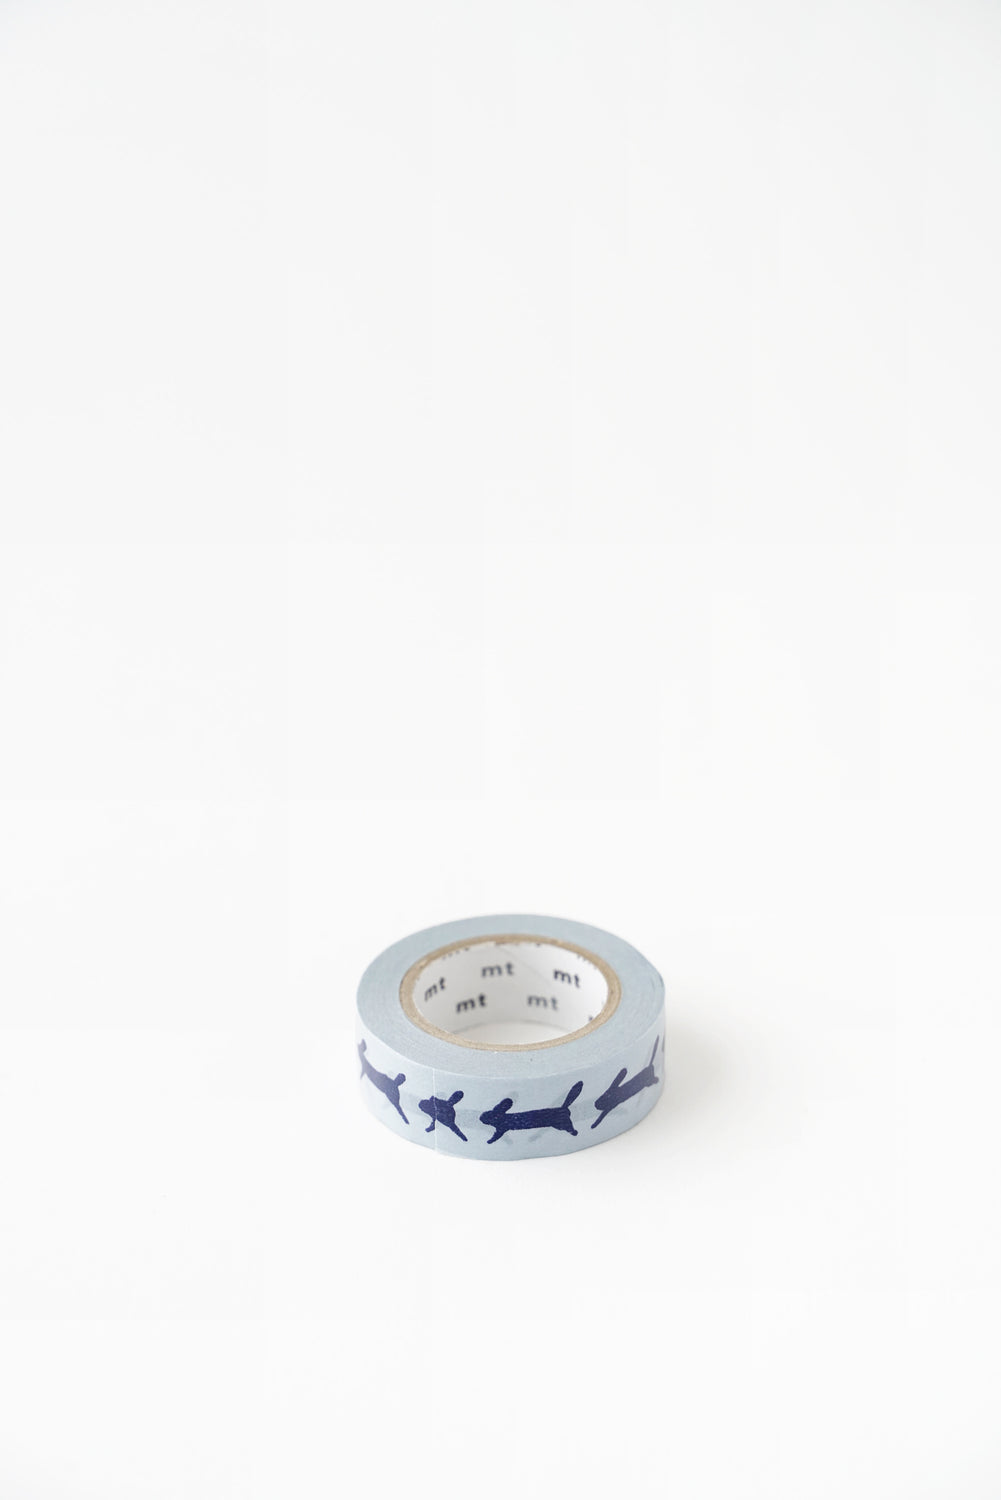 Run Run Run Washi Tape